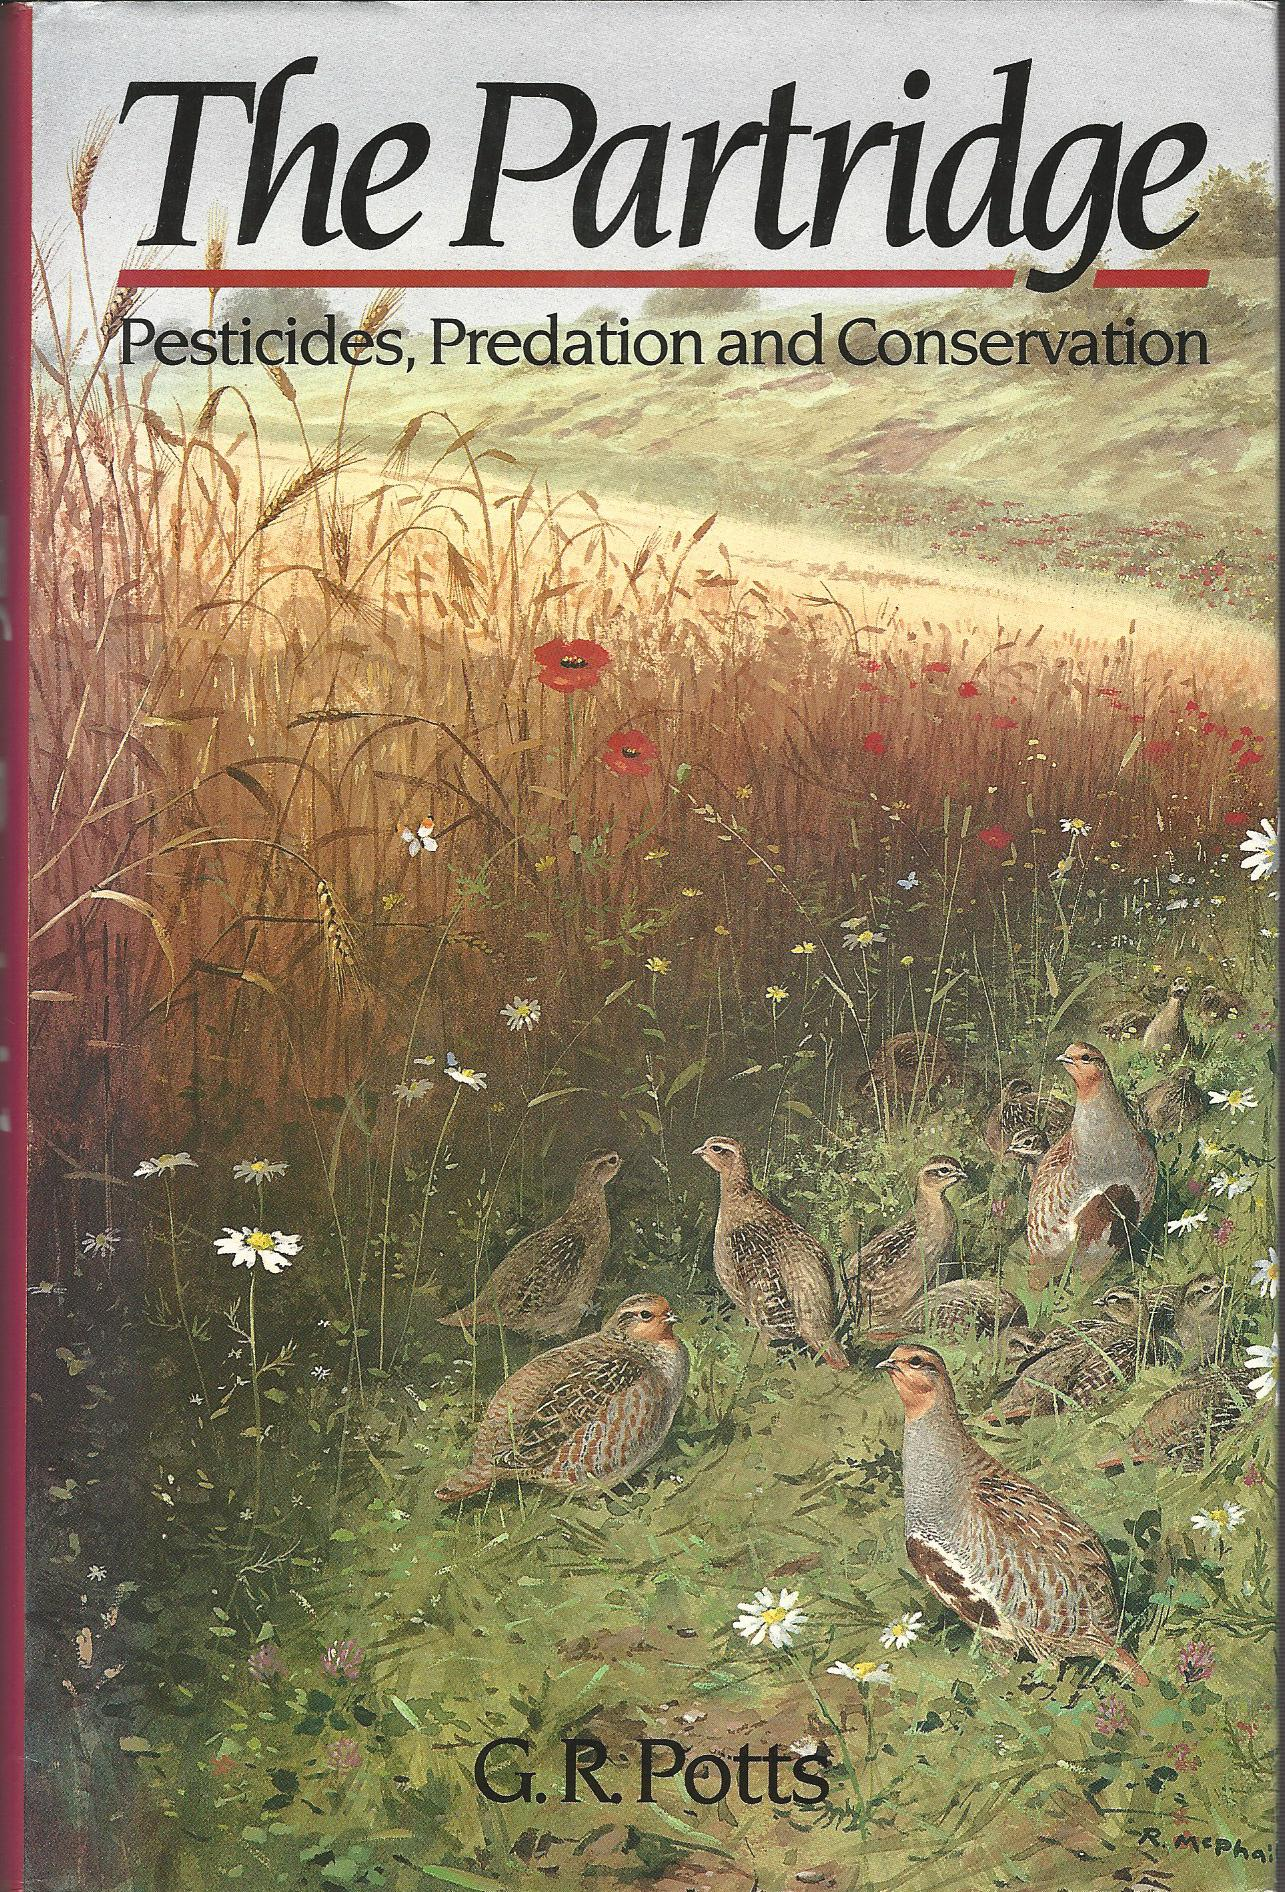 Image for The Partridge: Pesticides, Predation and Conservation.